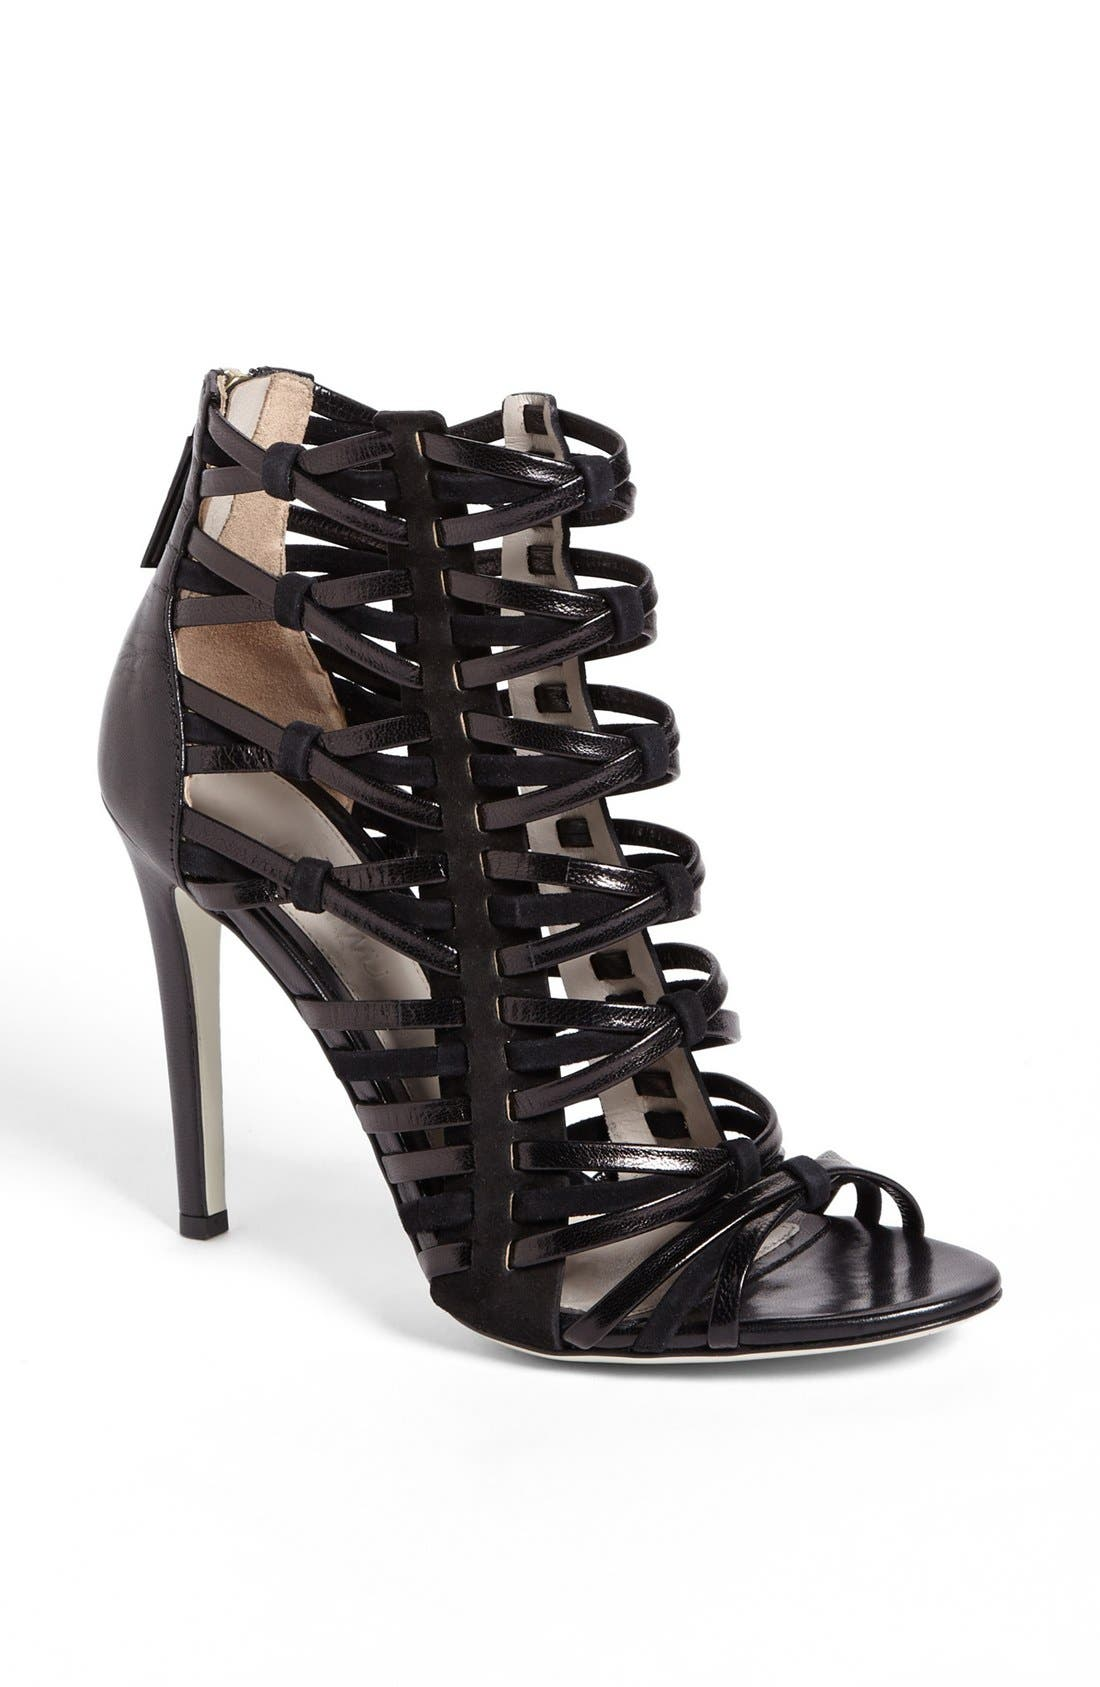 Alternate Image 1 Selected - Jason Wu Strappy Sandal